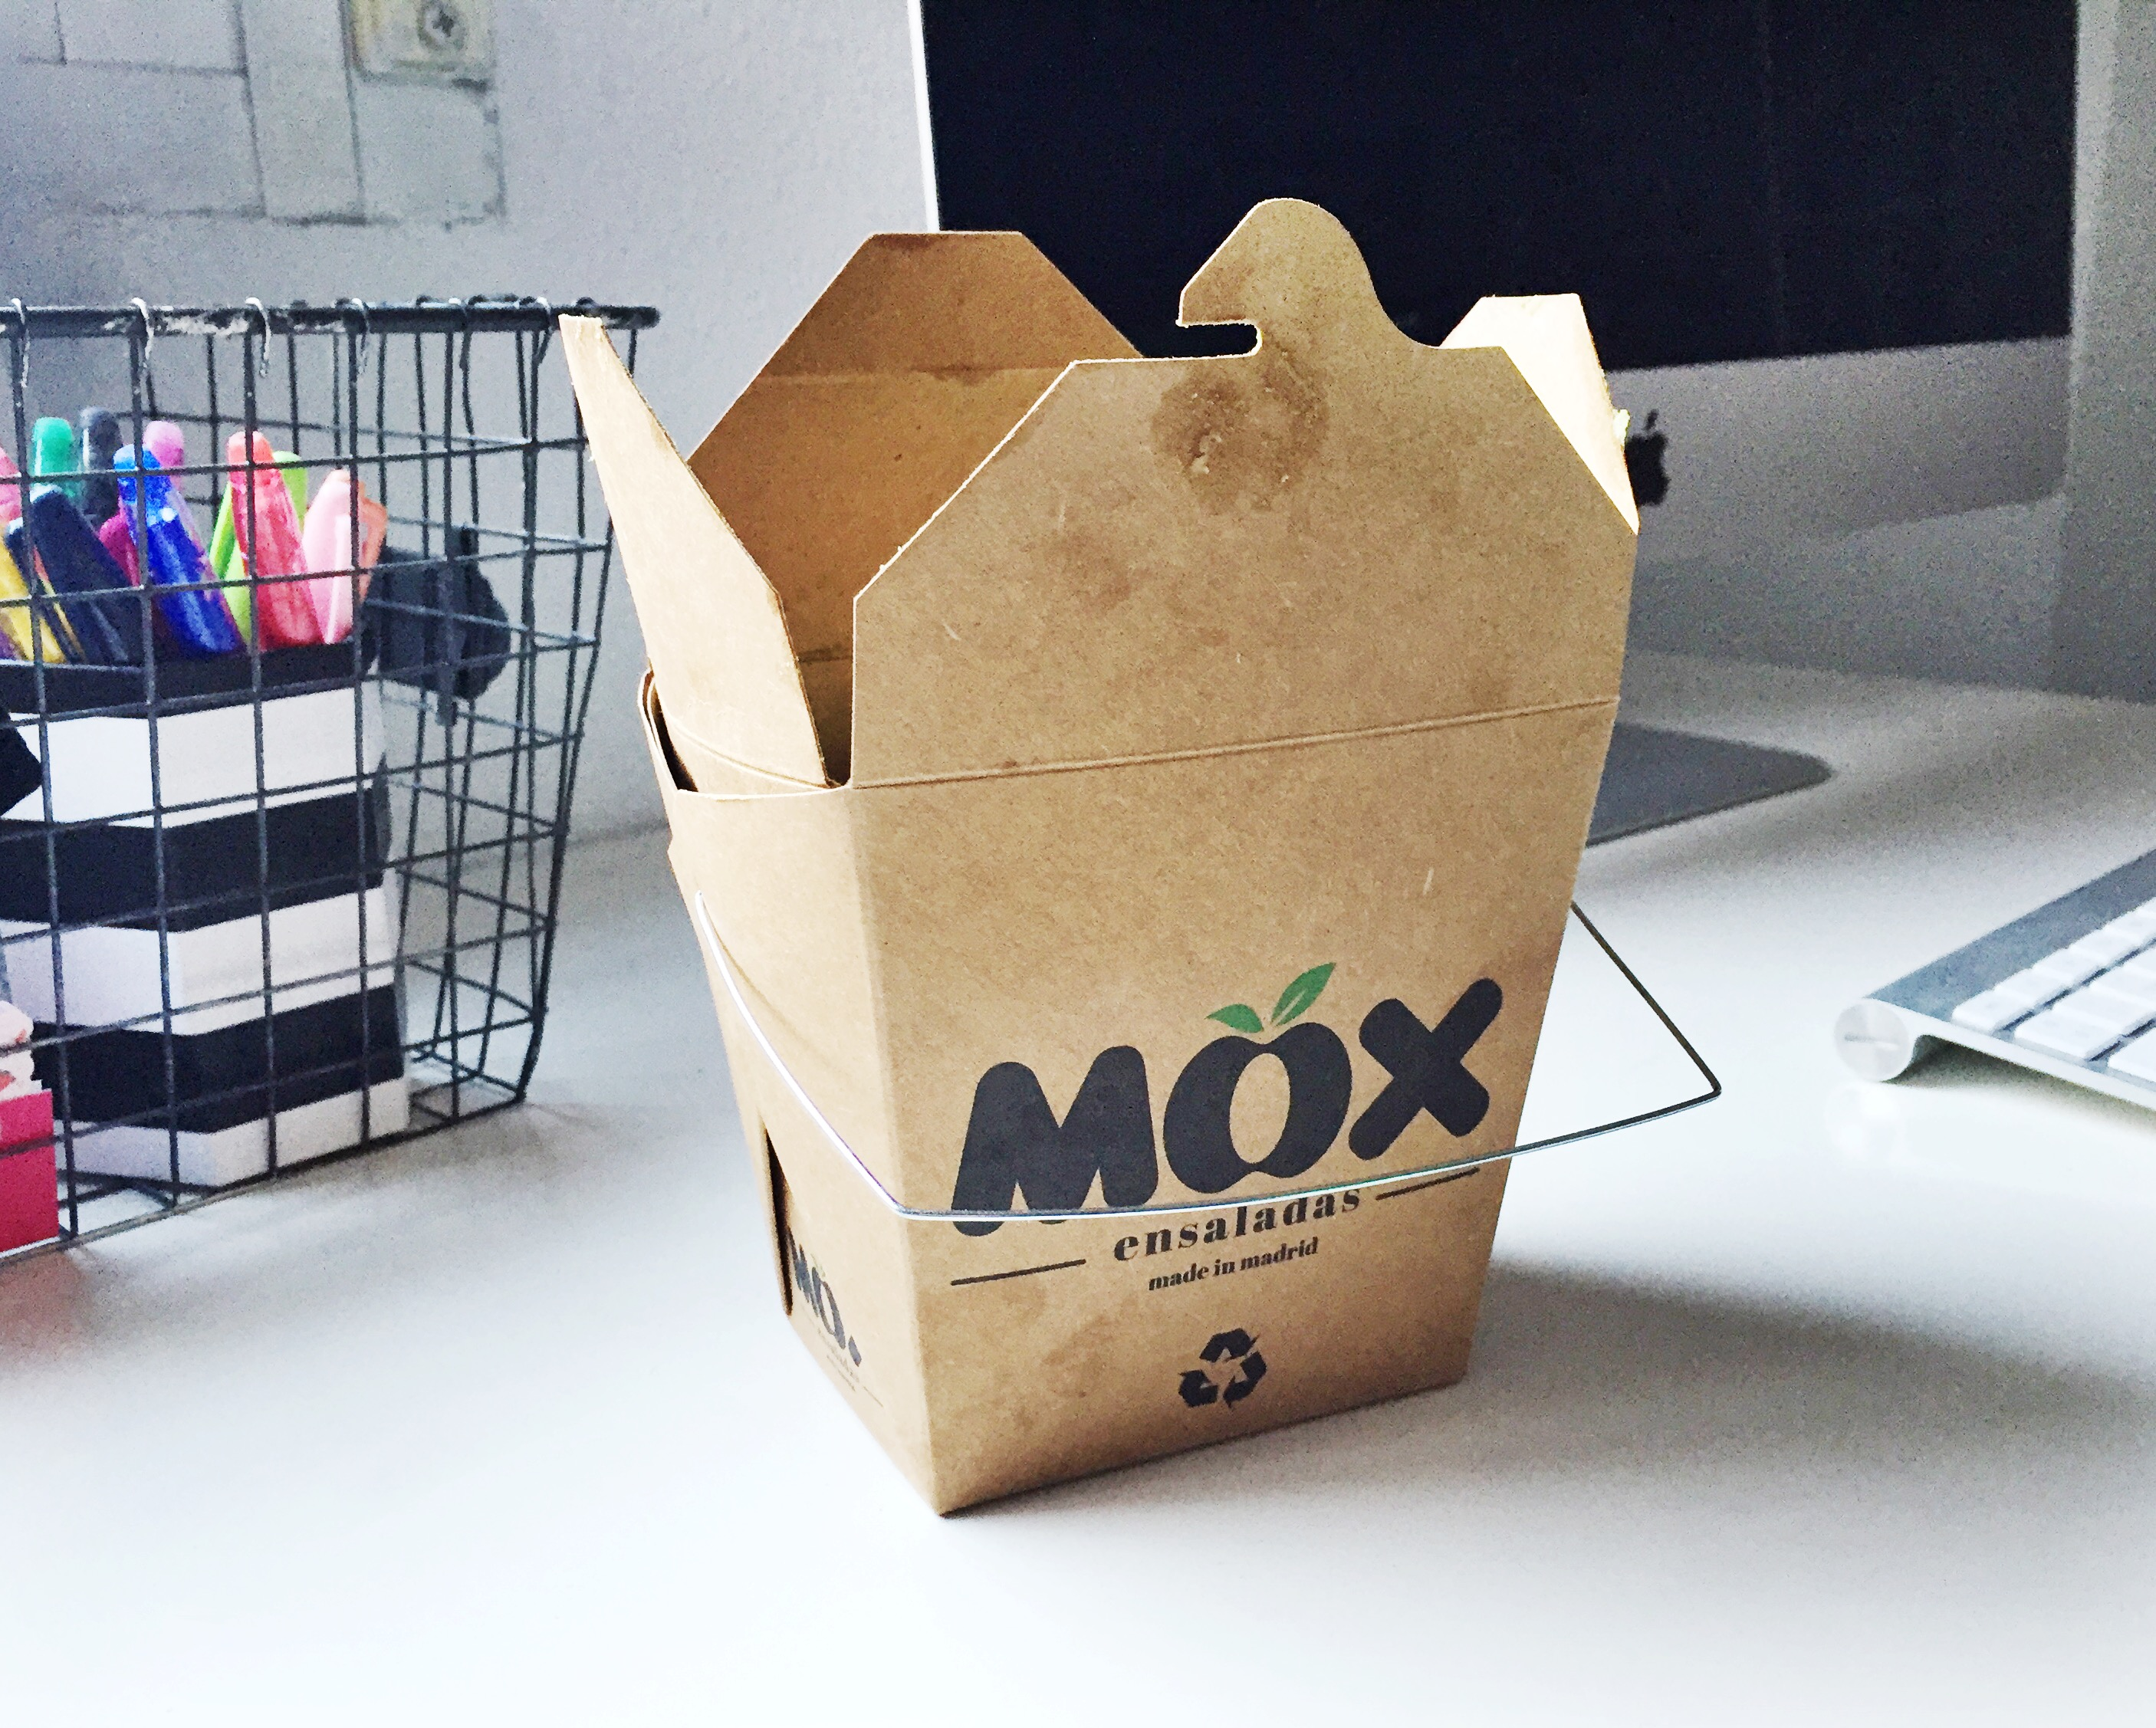 Mox healthy food